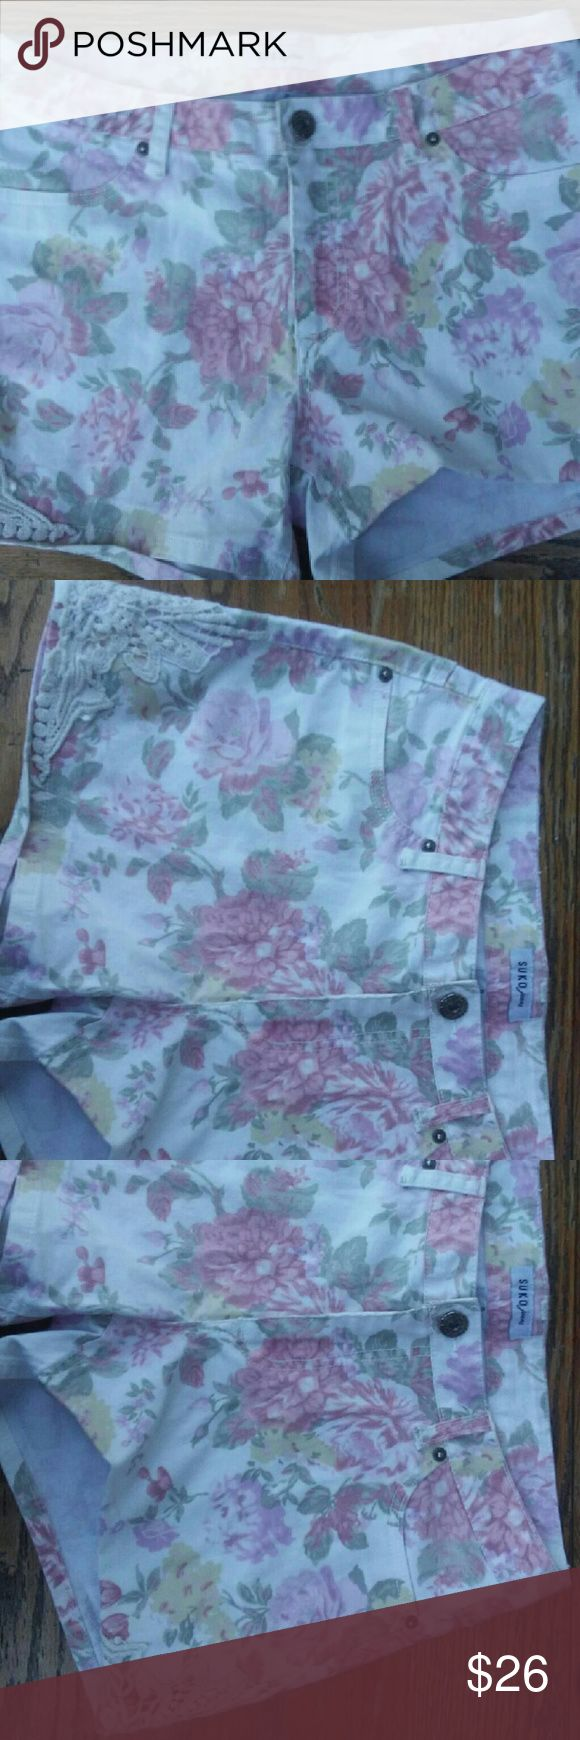 Suko Jeans womens floral shorts size 8 White floral short shorts unique pair of awesome colorful shorts suko jeans Shorts